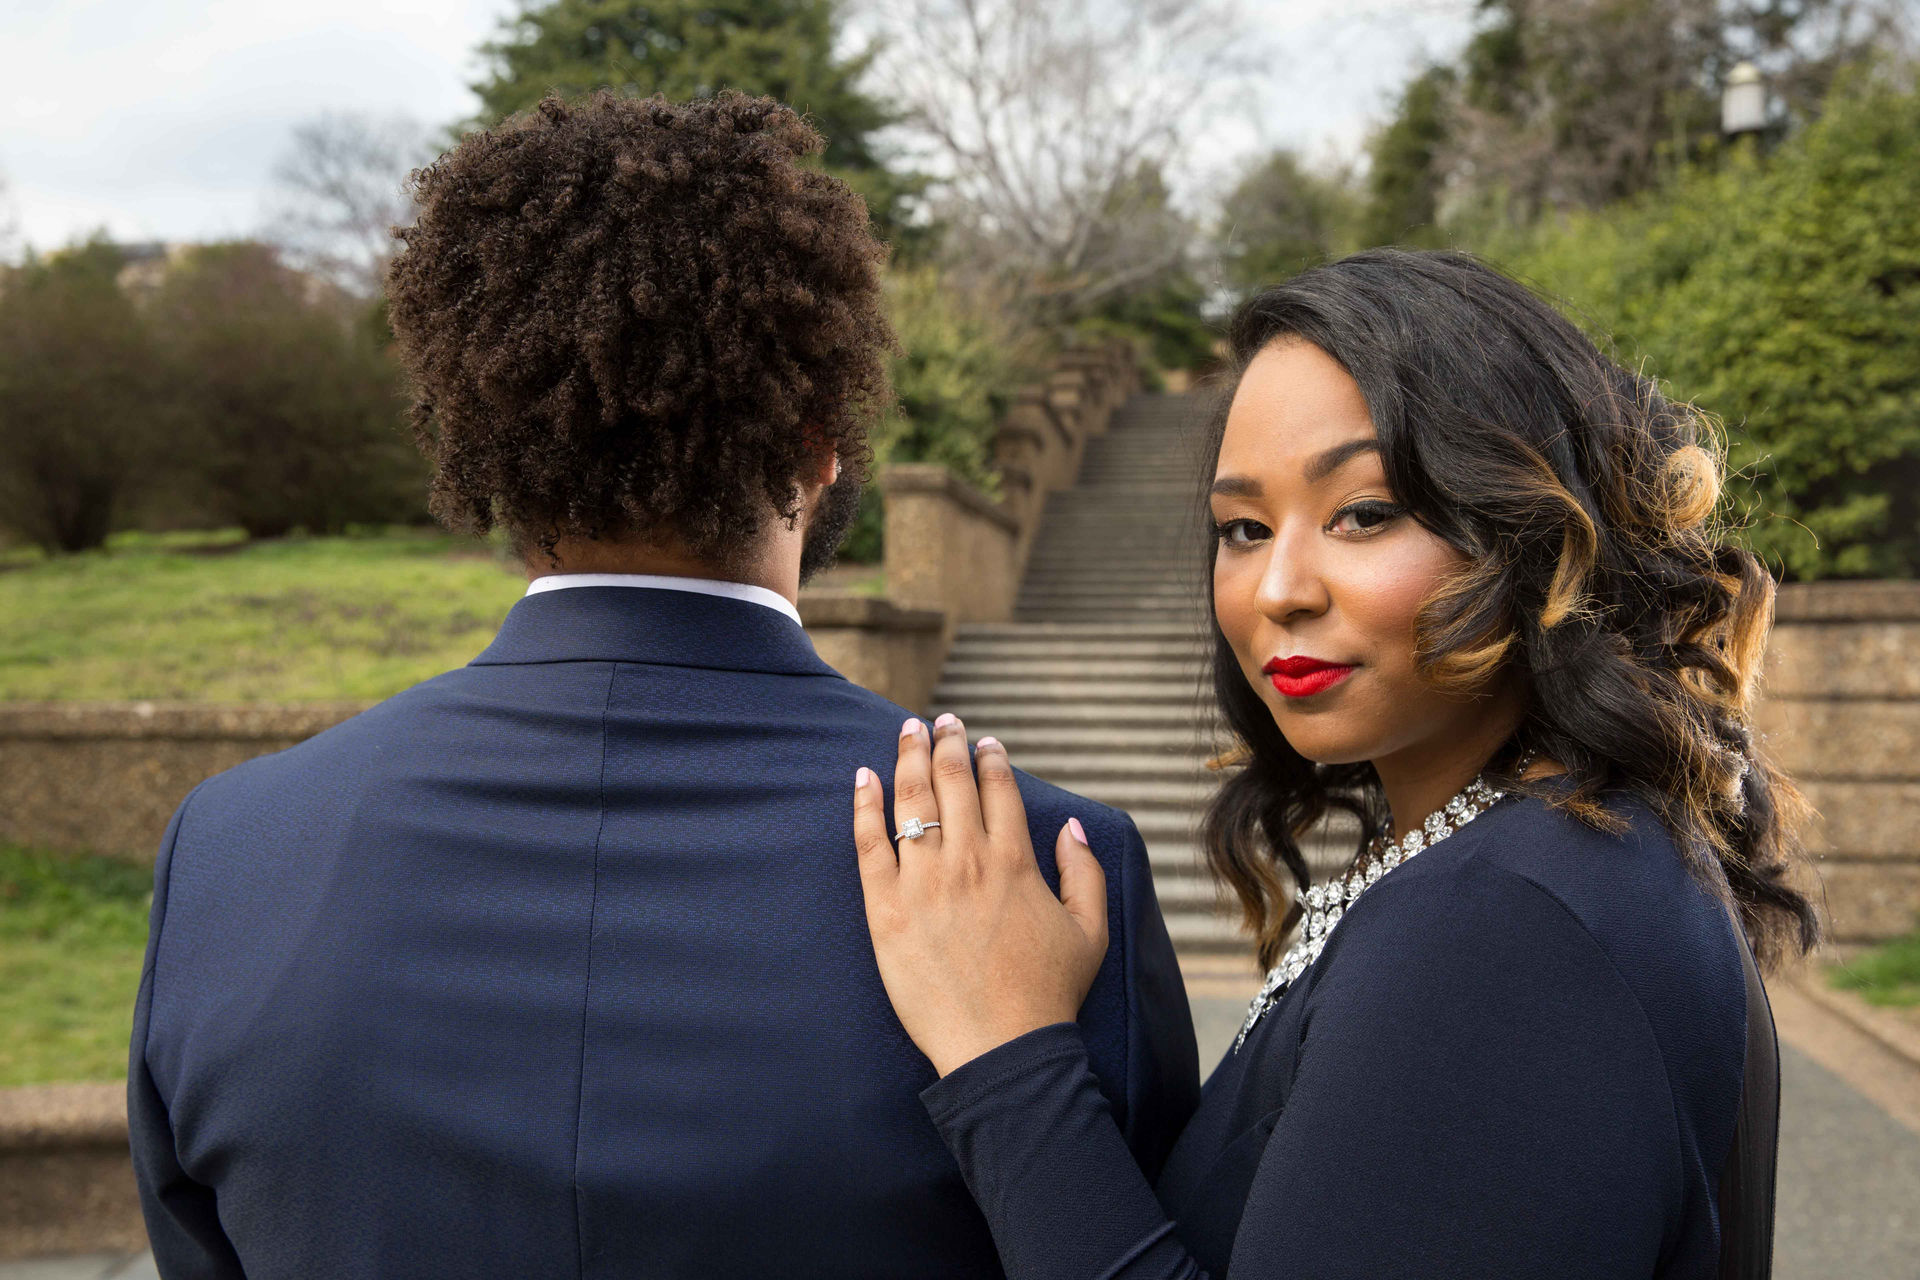 The couple posing during their engagement session in Washington DC.